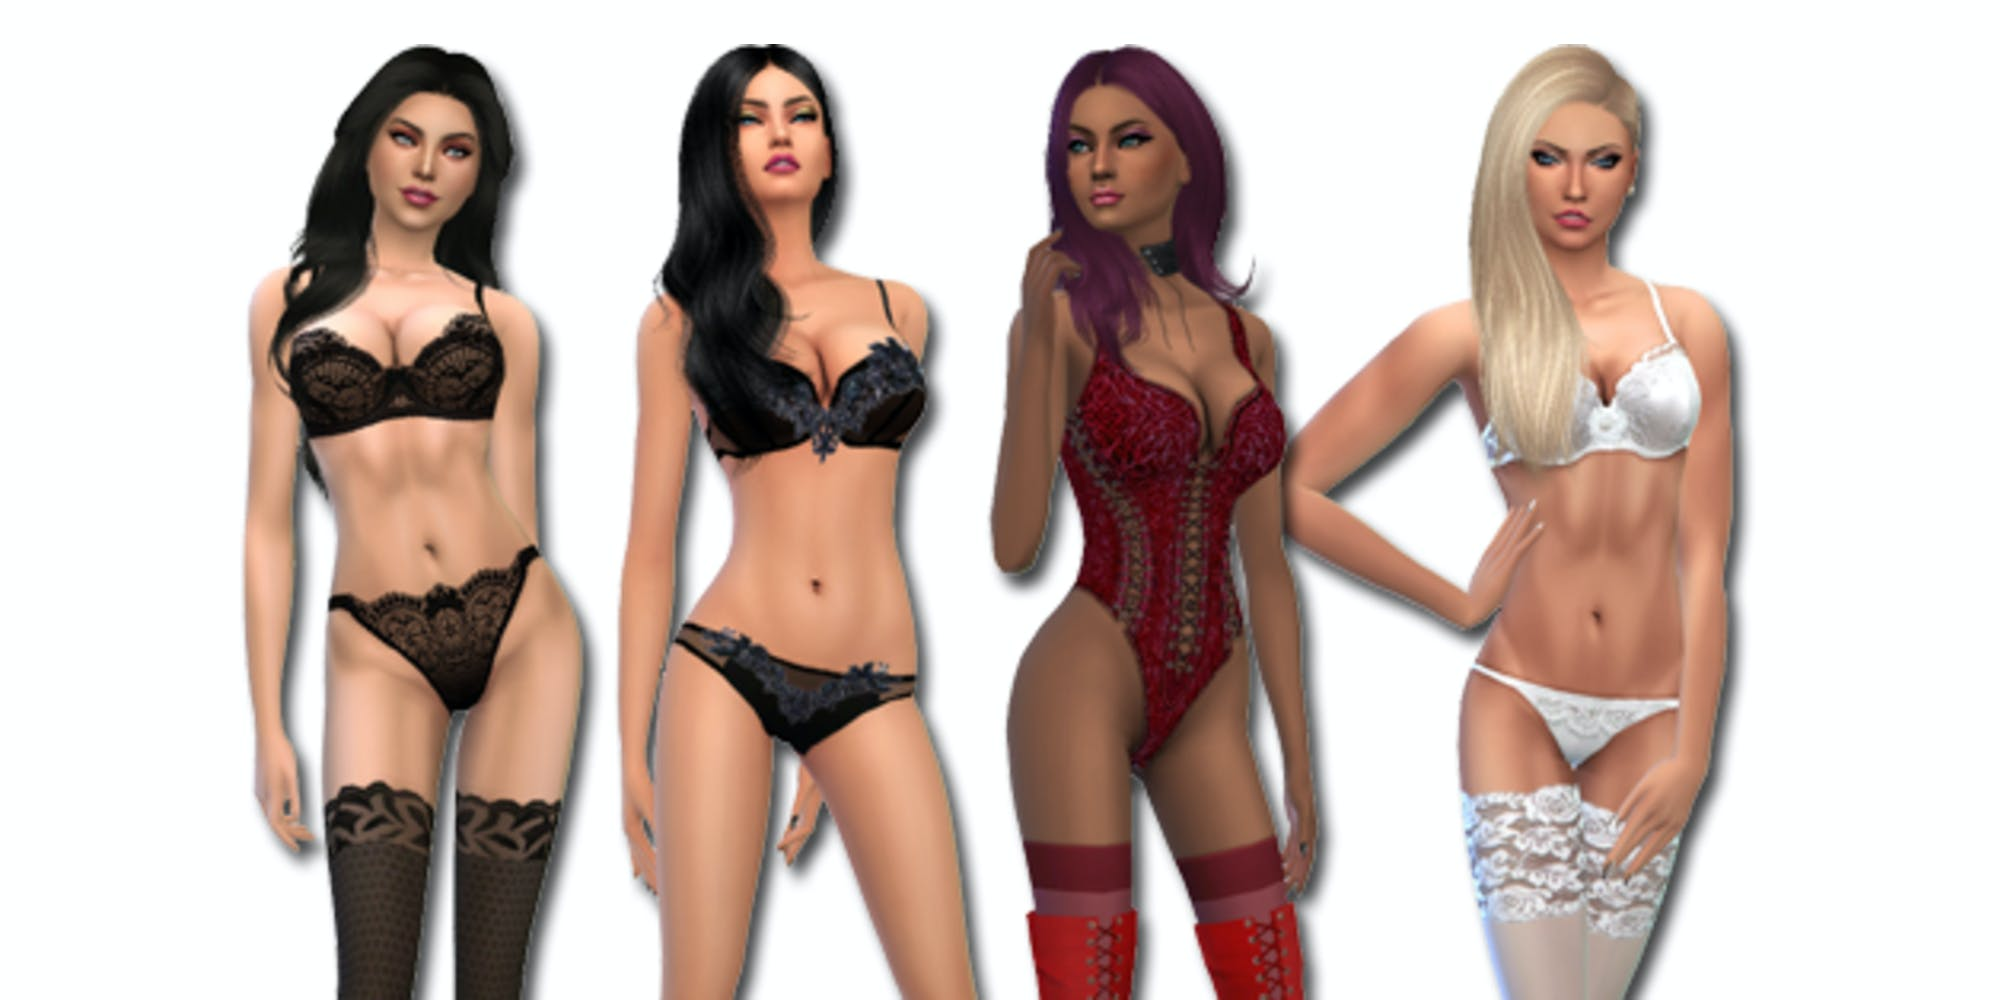 A picture of several women in lingerie in The Sims 4.